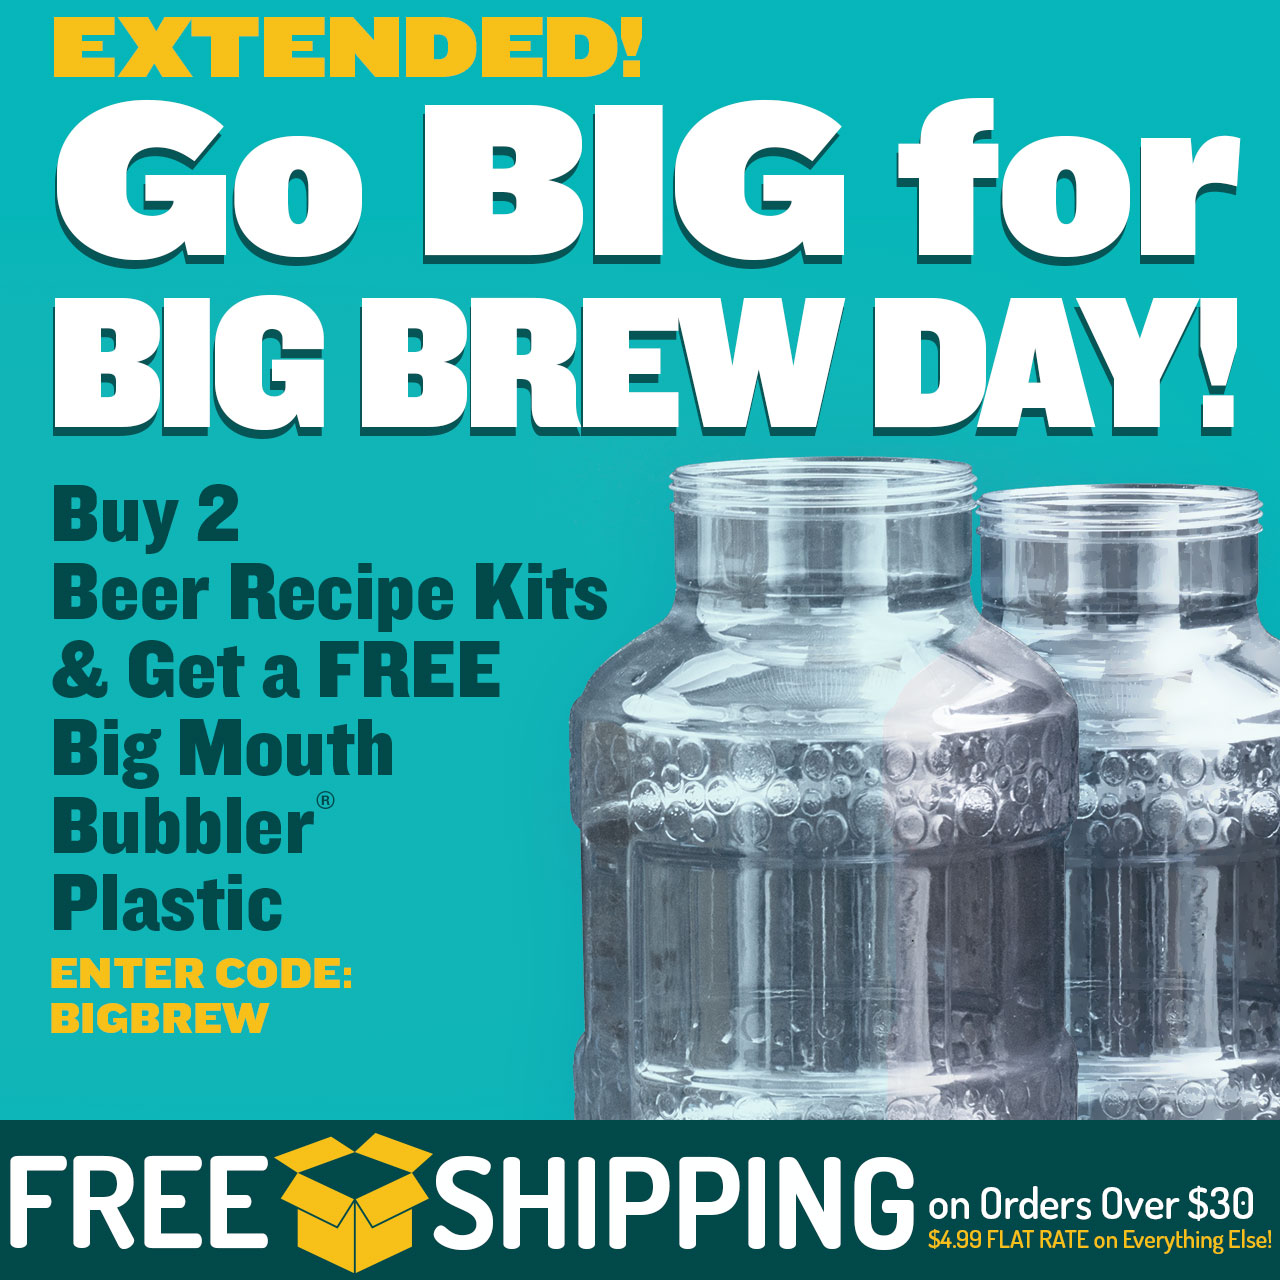 """Buy 2 Beer Kits, Get a Free Big Mouth Bubbler. Use Code """"BIGBREW"""" now through 11:59pm CST on 5/8/2018."""